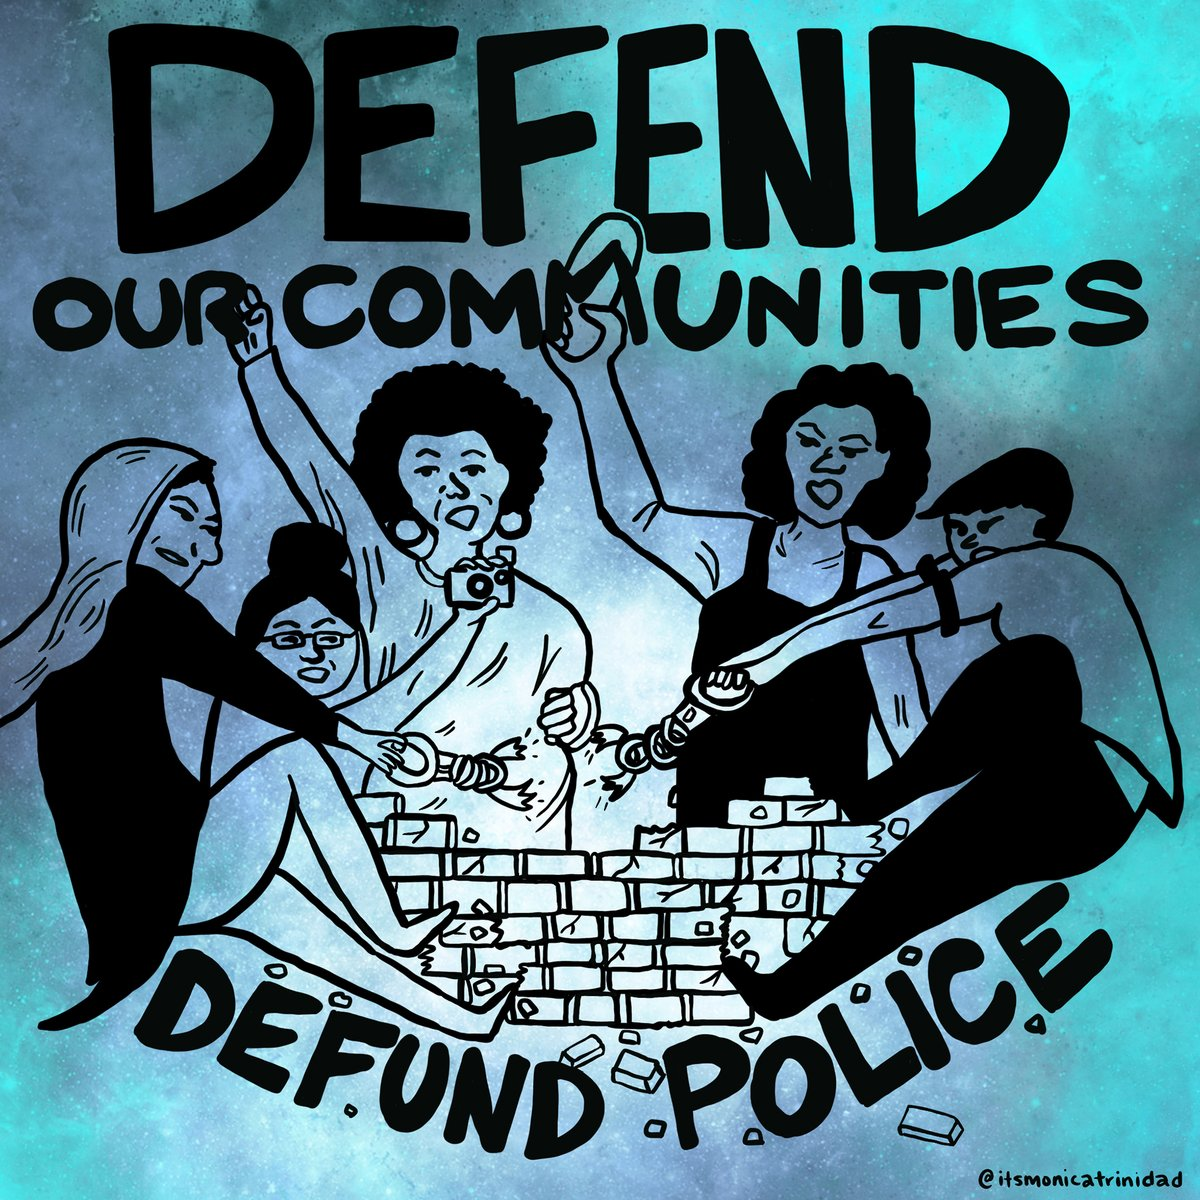 Saturday THREAD - So much solidarity from coast to coast!  This is an updated thread on bail funds supporting people arrested for demanding justice for George Floyd, Breonna Taylor, & all victims of police violence. 1/ #FreeThemAll https://t.co/ZNdkwvVlMX